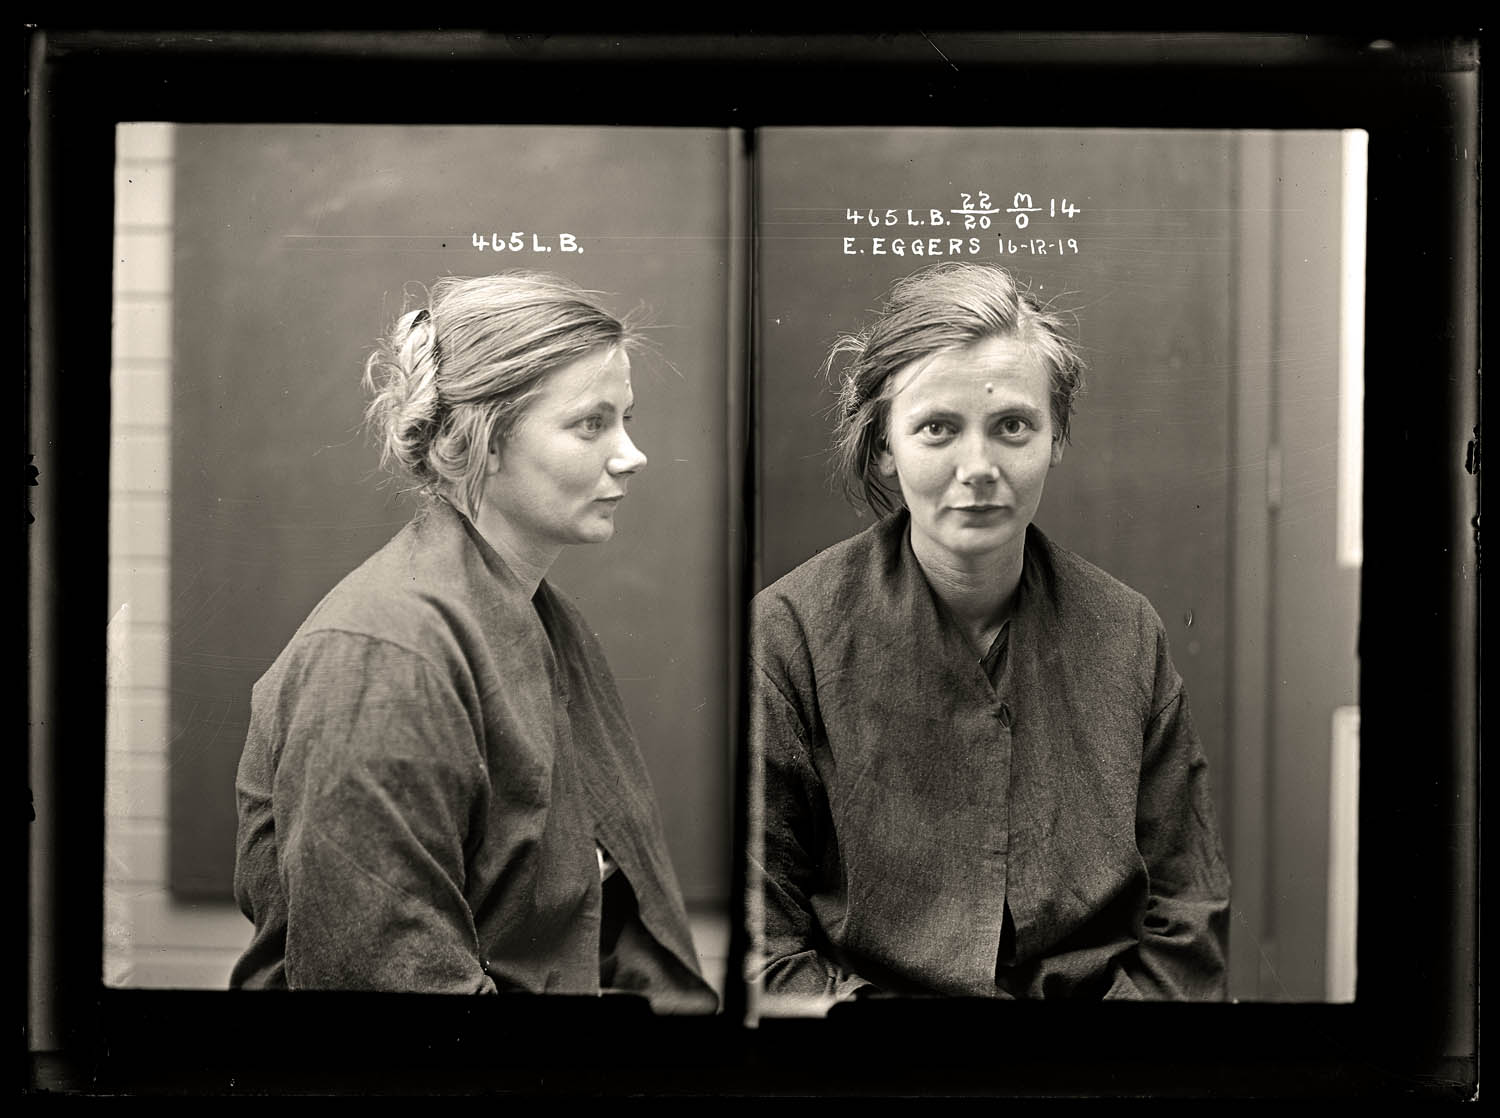 Esther Eggers, criminal record number 465LB, 16 December 1919. State Reformatory for Women, Long Bay, NSW